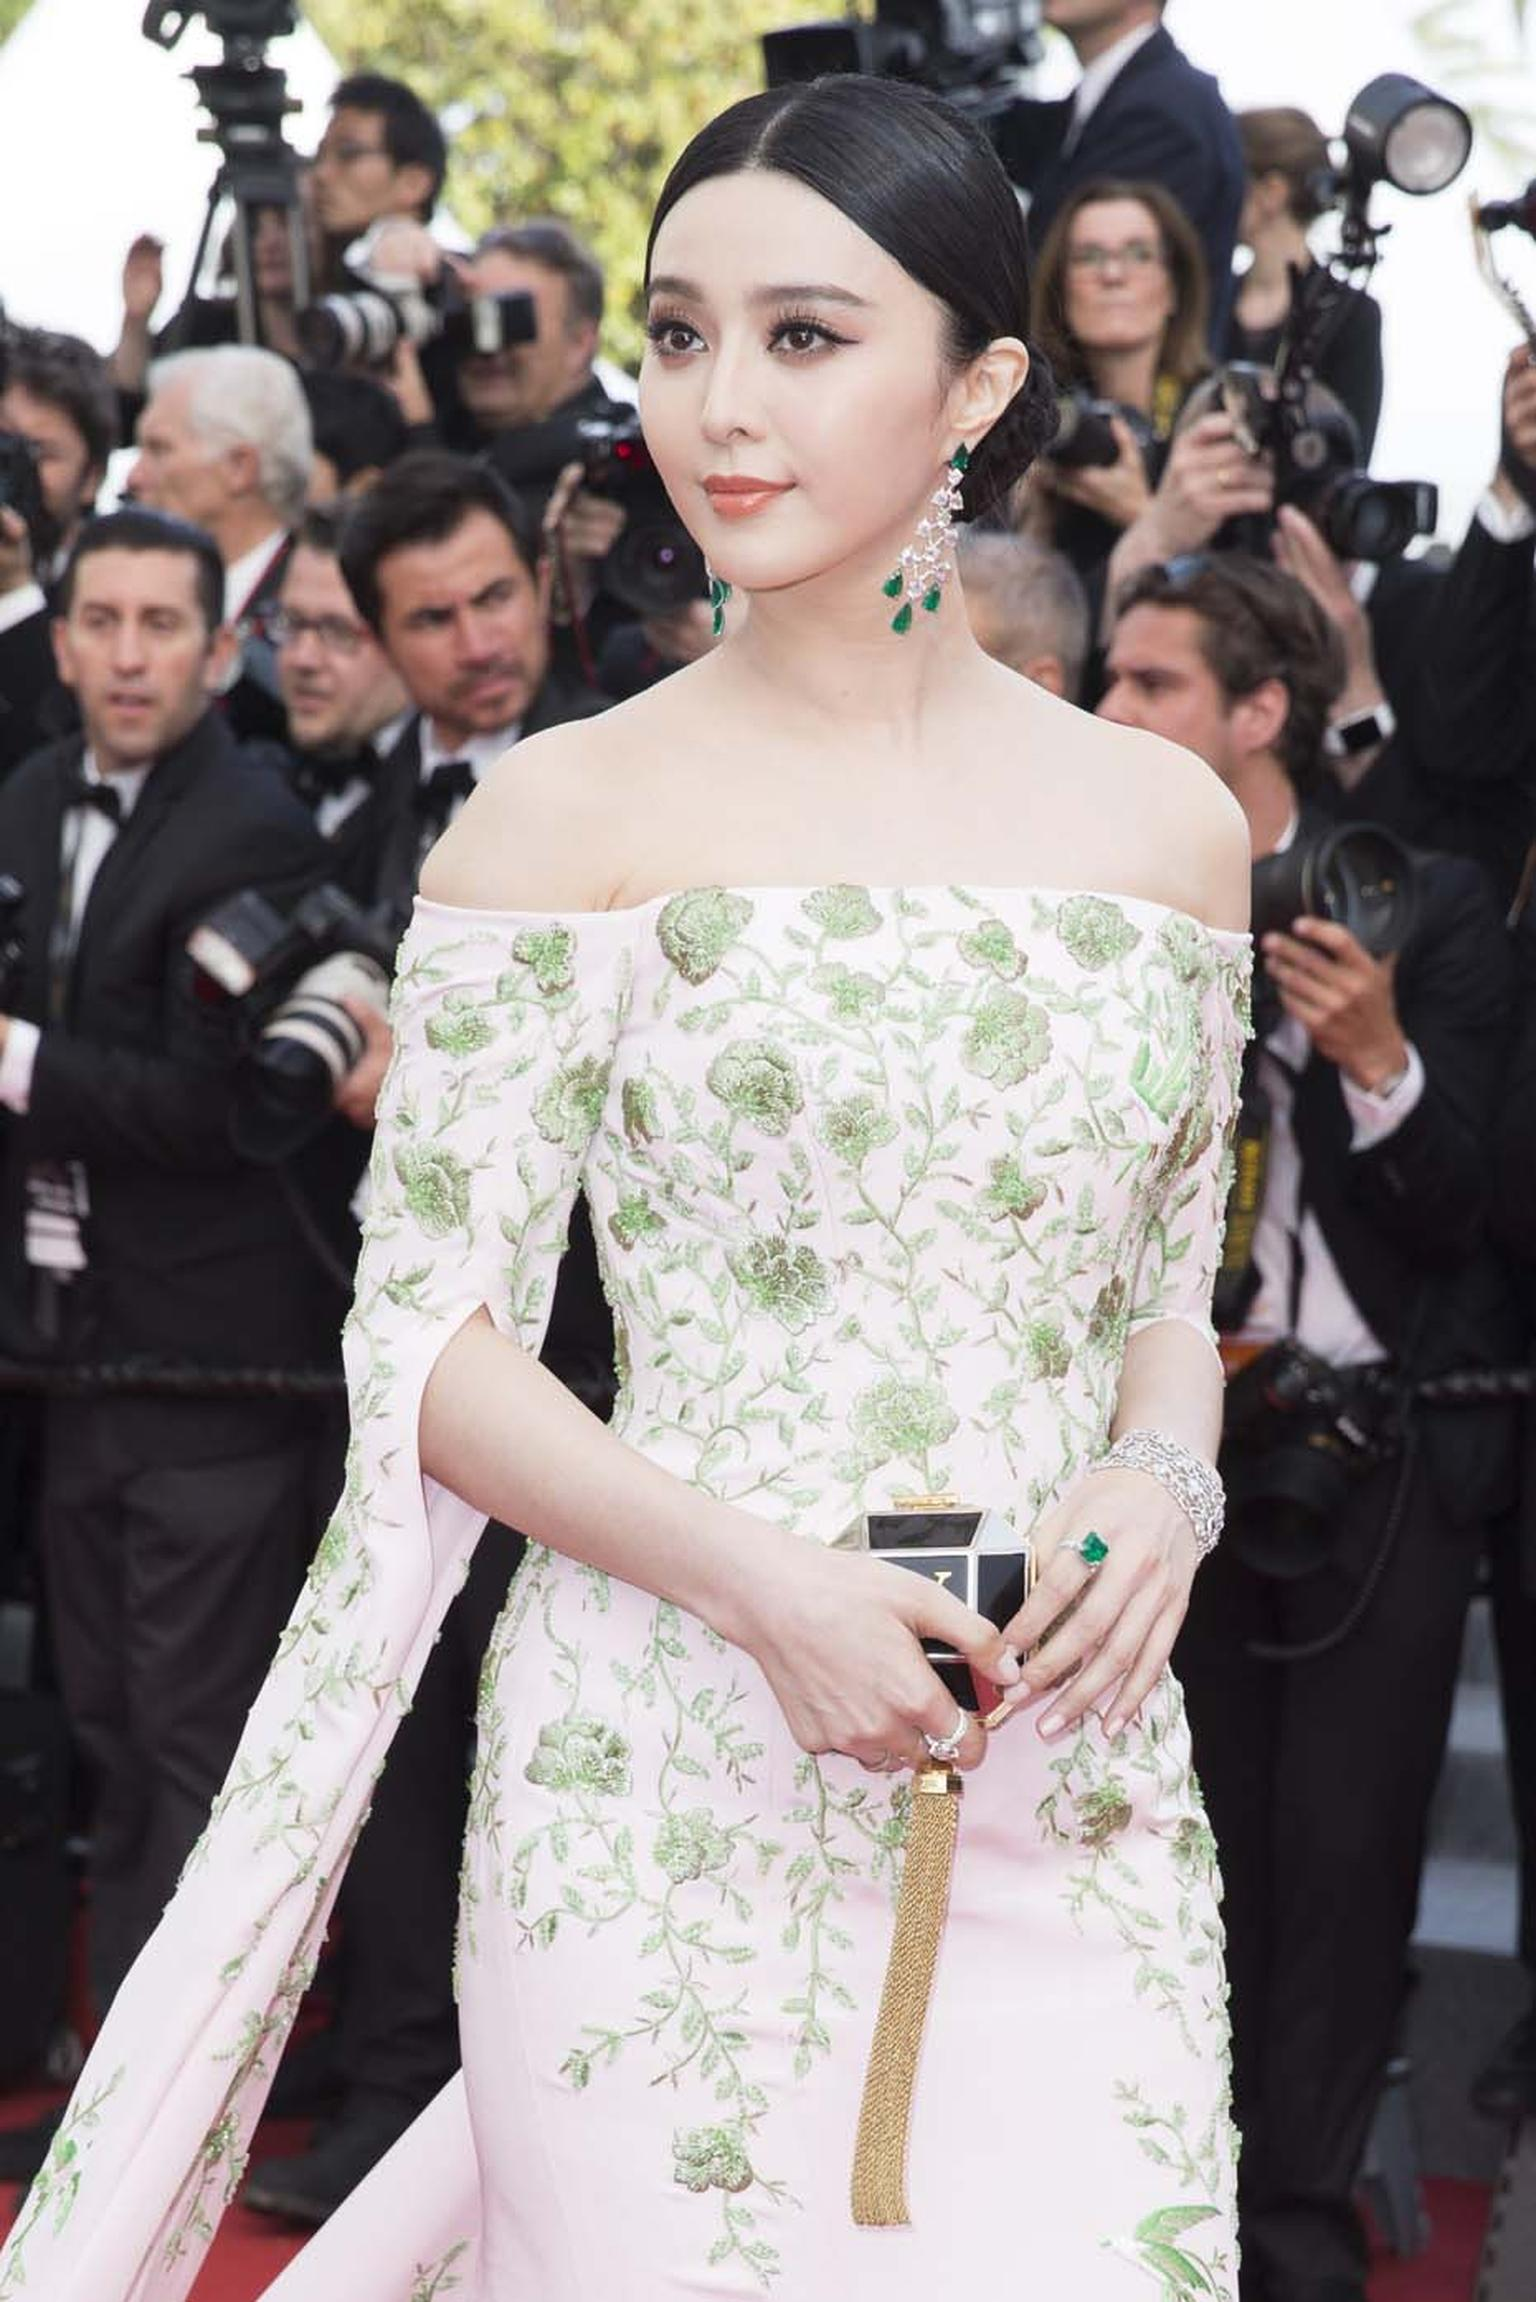 One of our favourite Cannes jewellery looks from the opening day was Chinese actress Fan Bingbing, who looked radiant in a pair of emerald Chopard earrings and an emerald ring from the Red Carpet collection, which matched her green and white floral Ralph